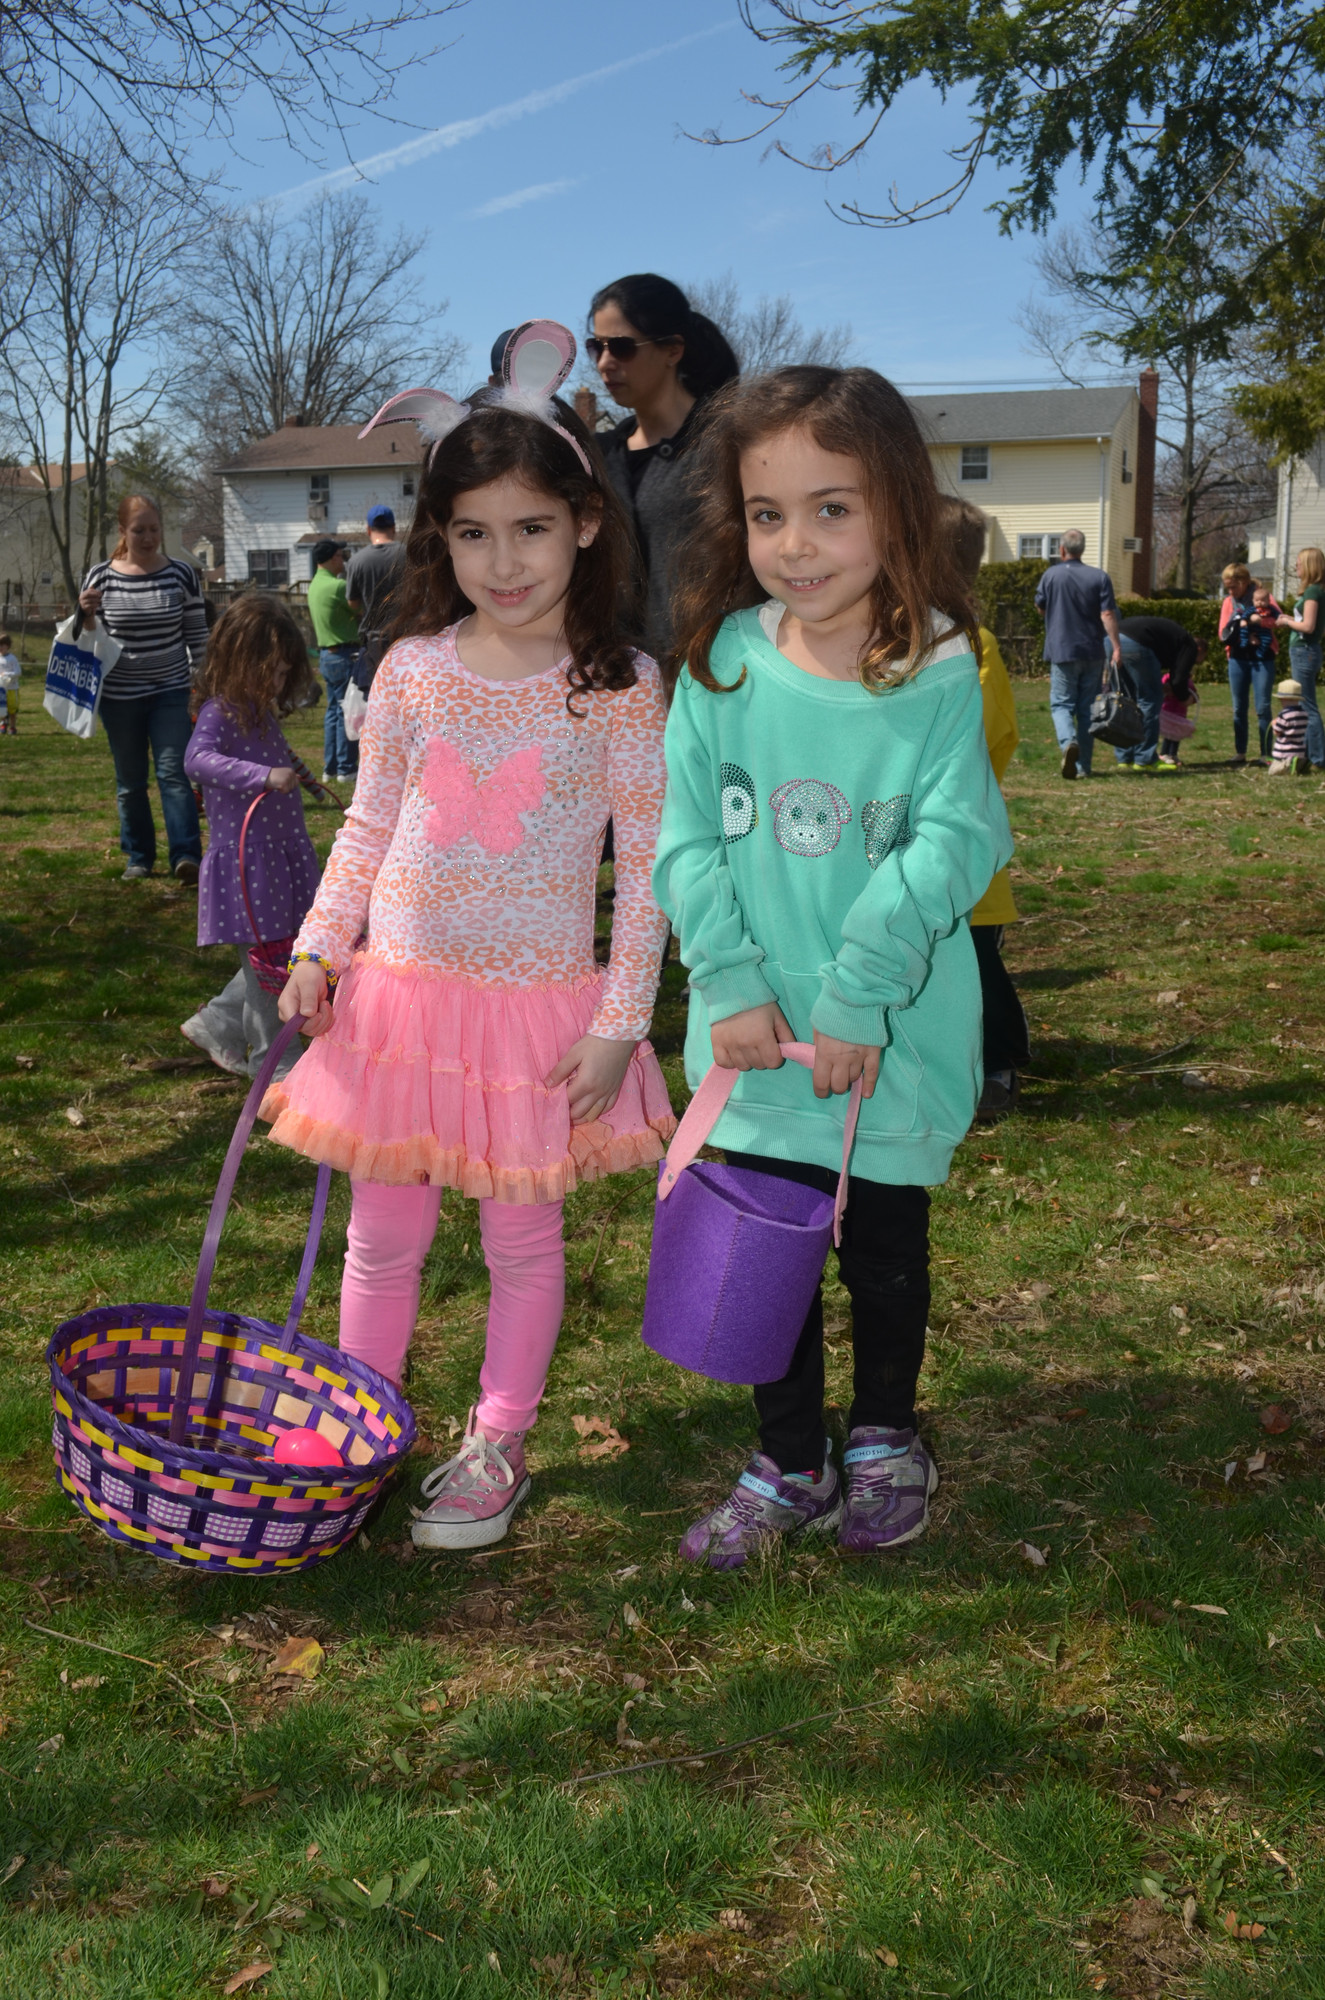 Landyn Kalman, 5, and Ruby Cilibrasi, 5, posed during the egg hunt.